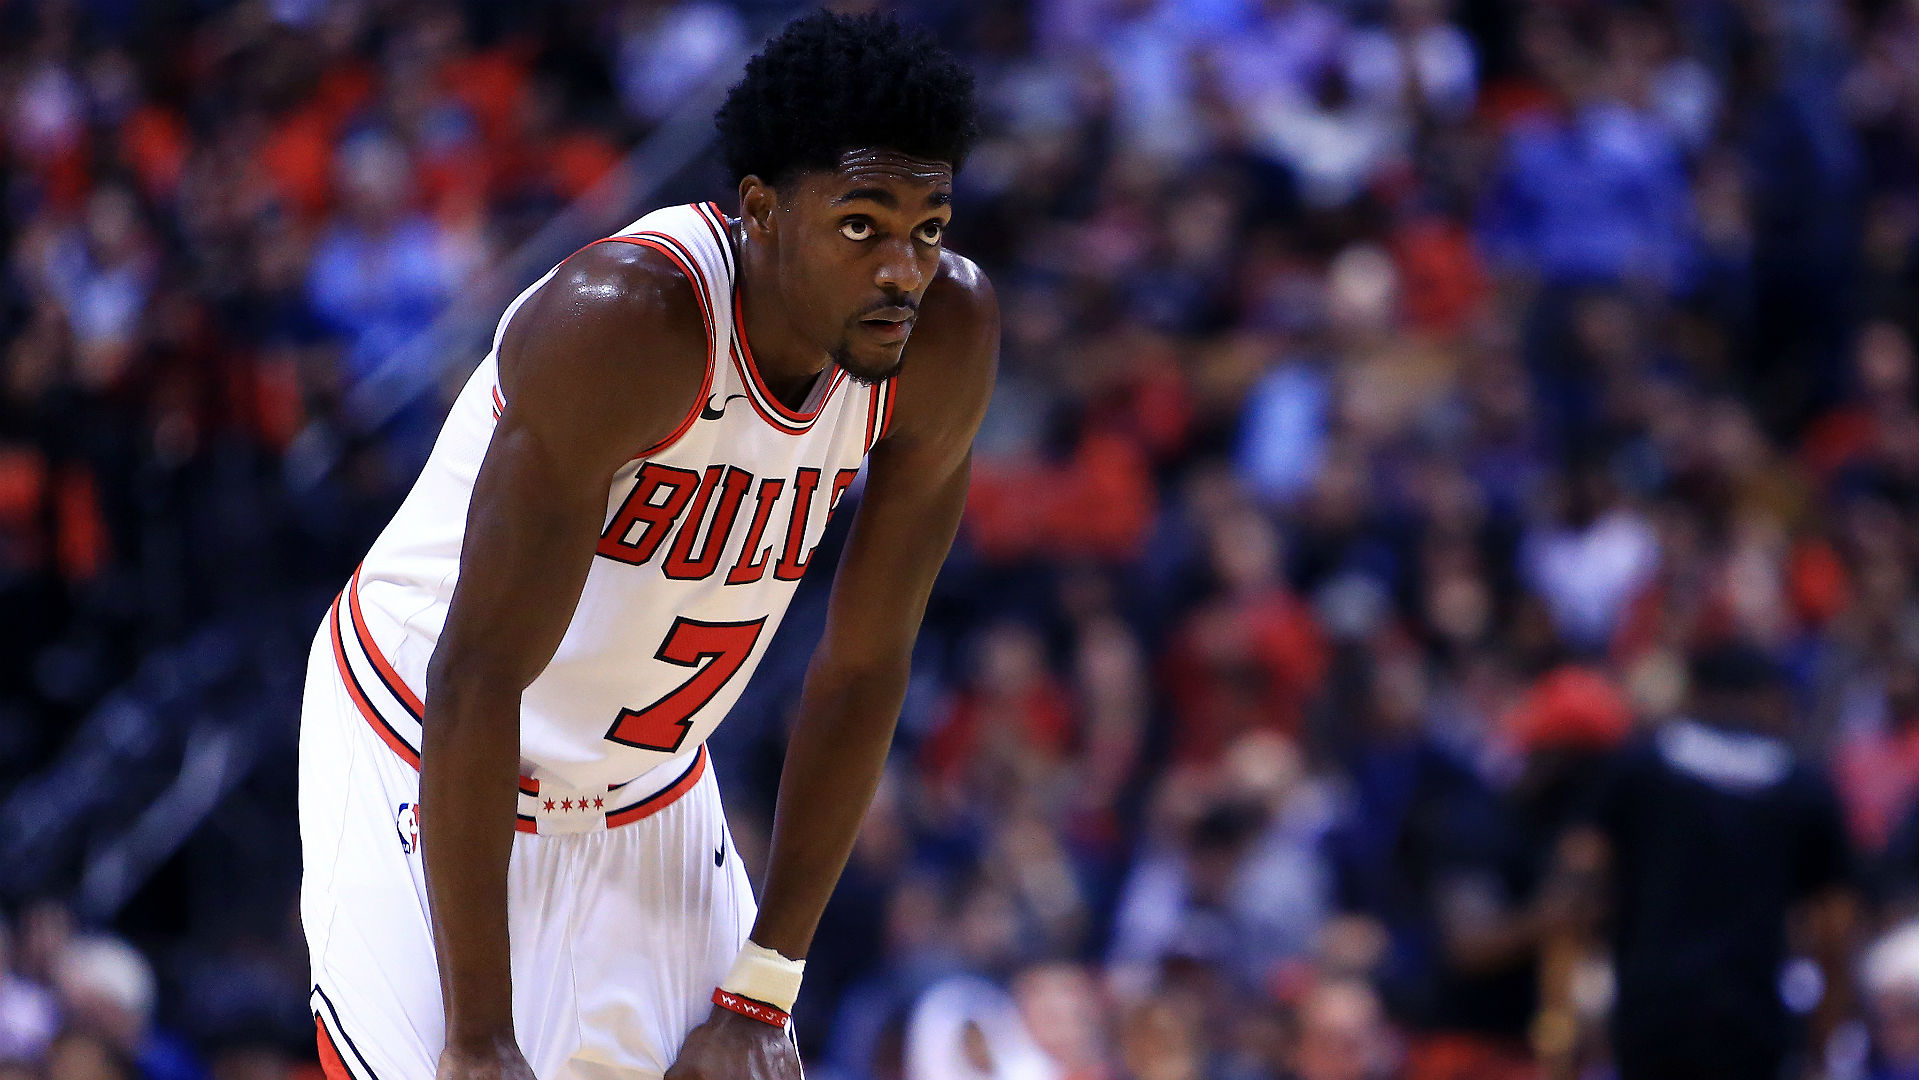 The Whiteboard: The Chicago Bulls got a good return for Justin Holiday